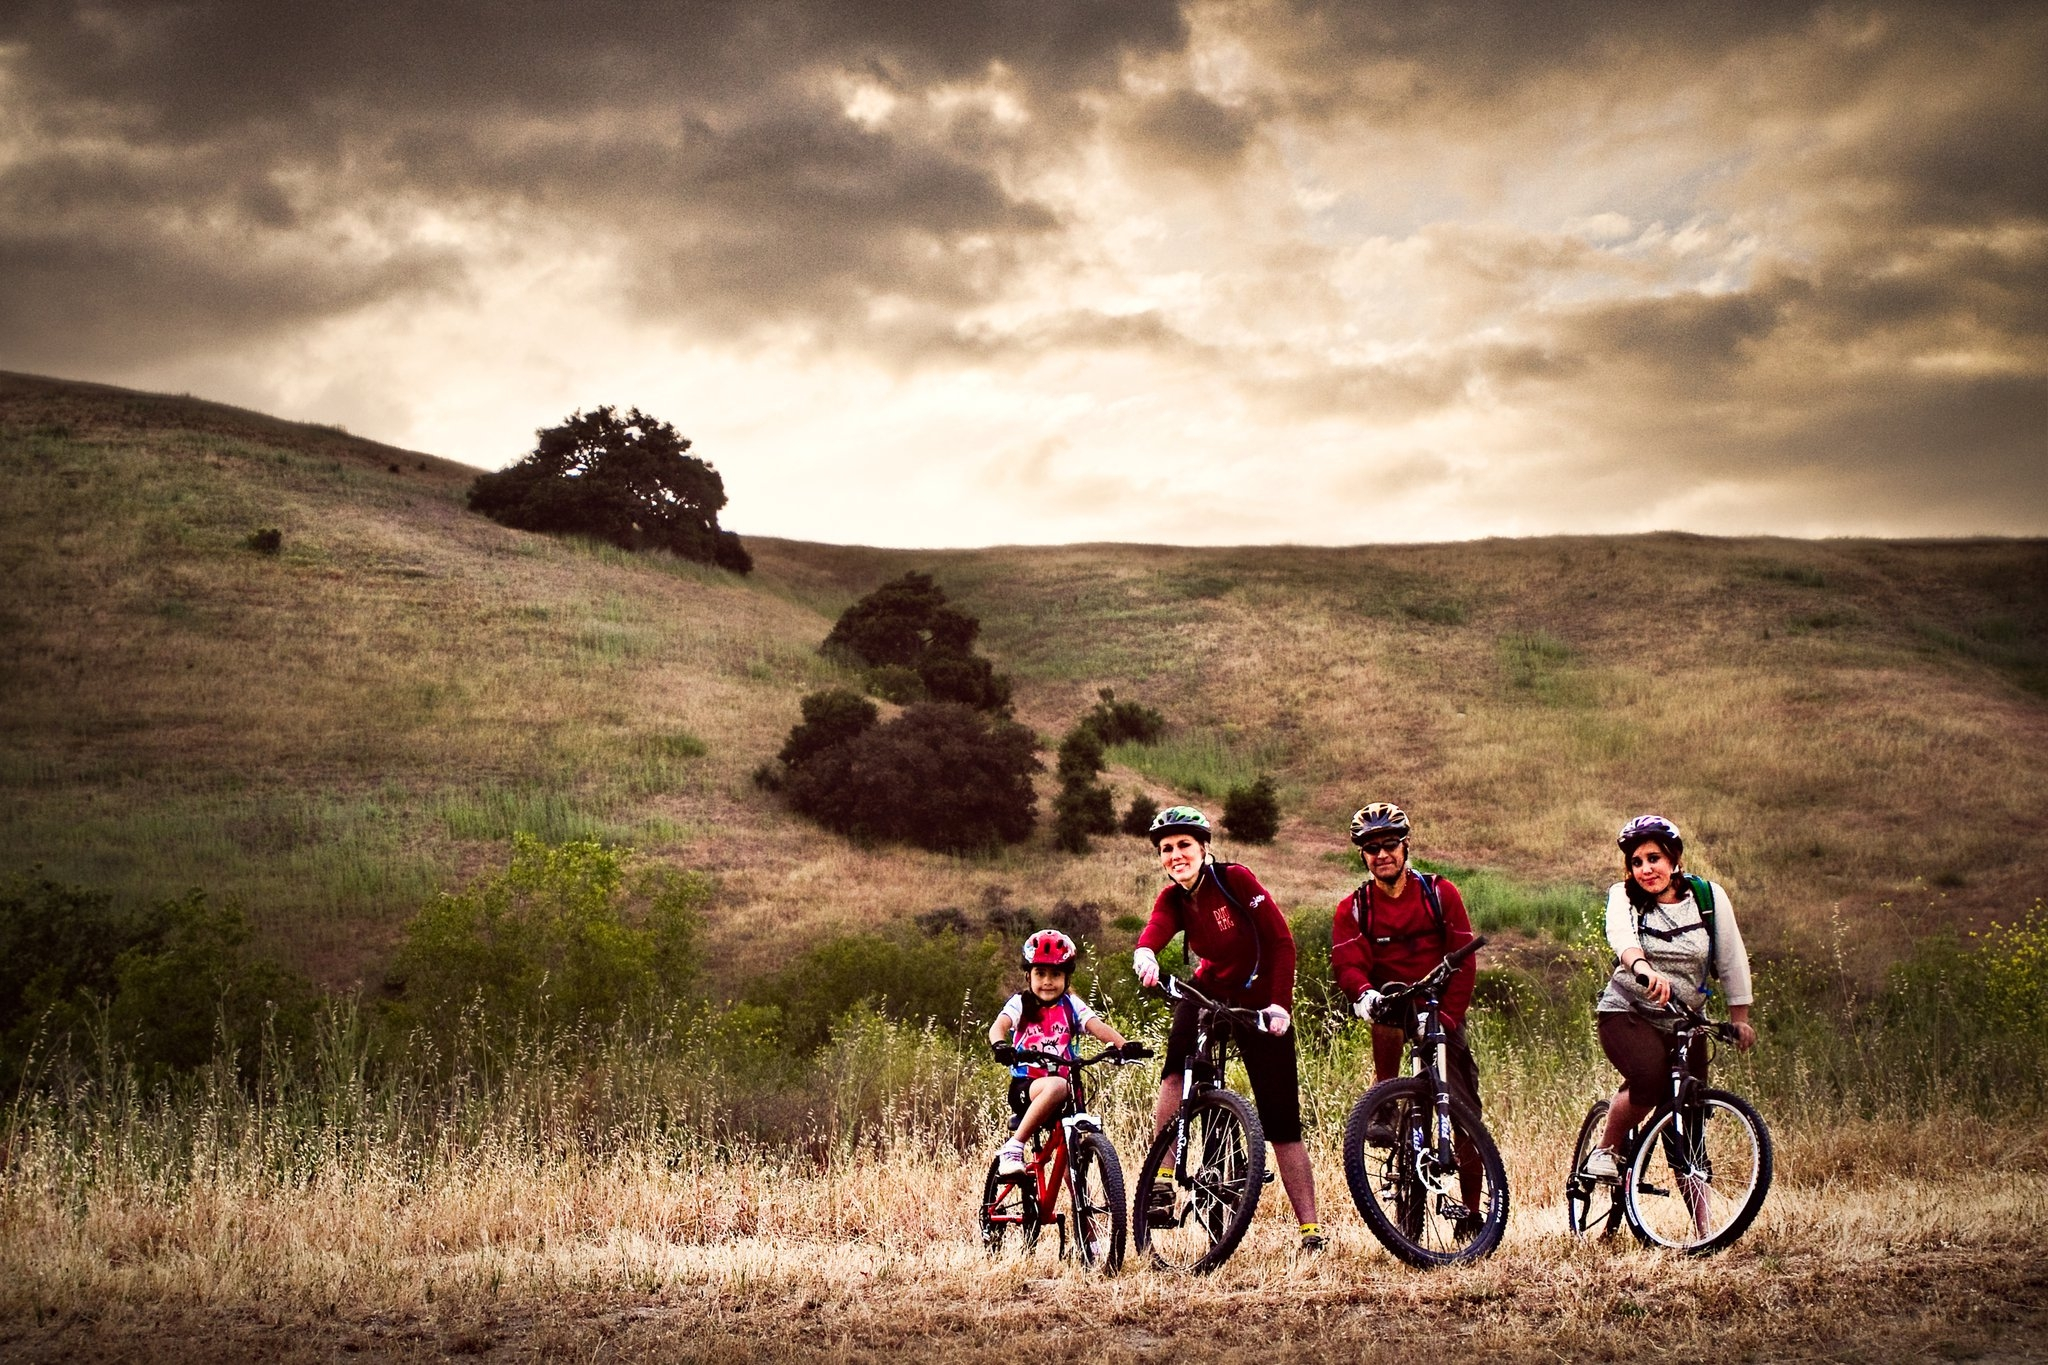 Family of four enjoying the view and cycling together